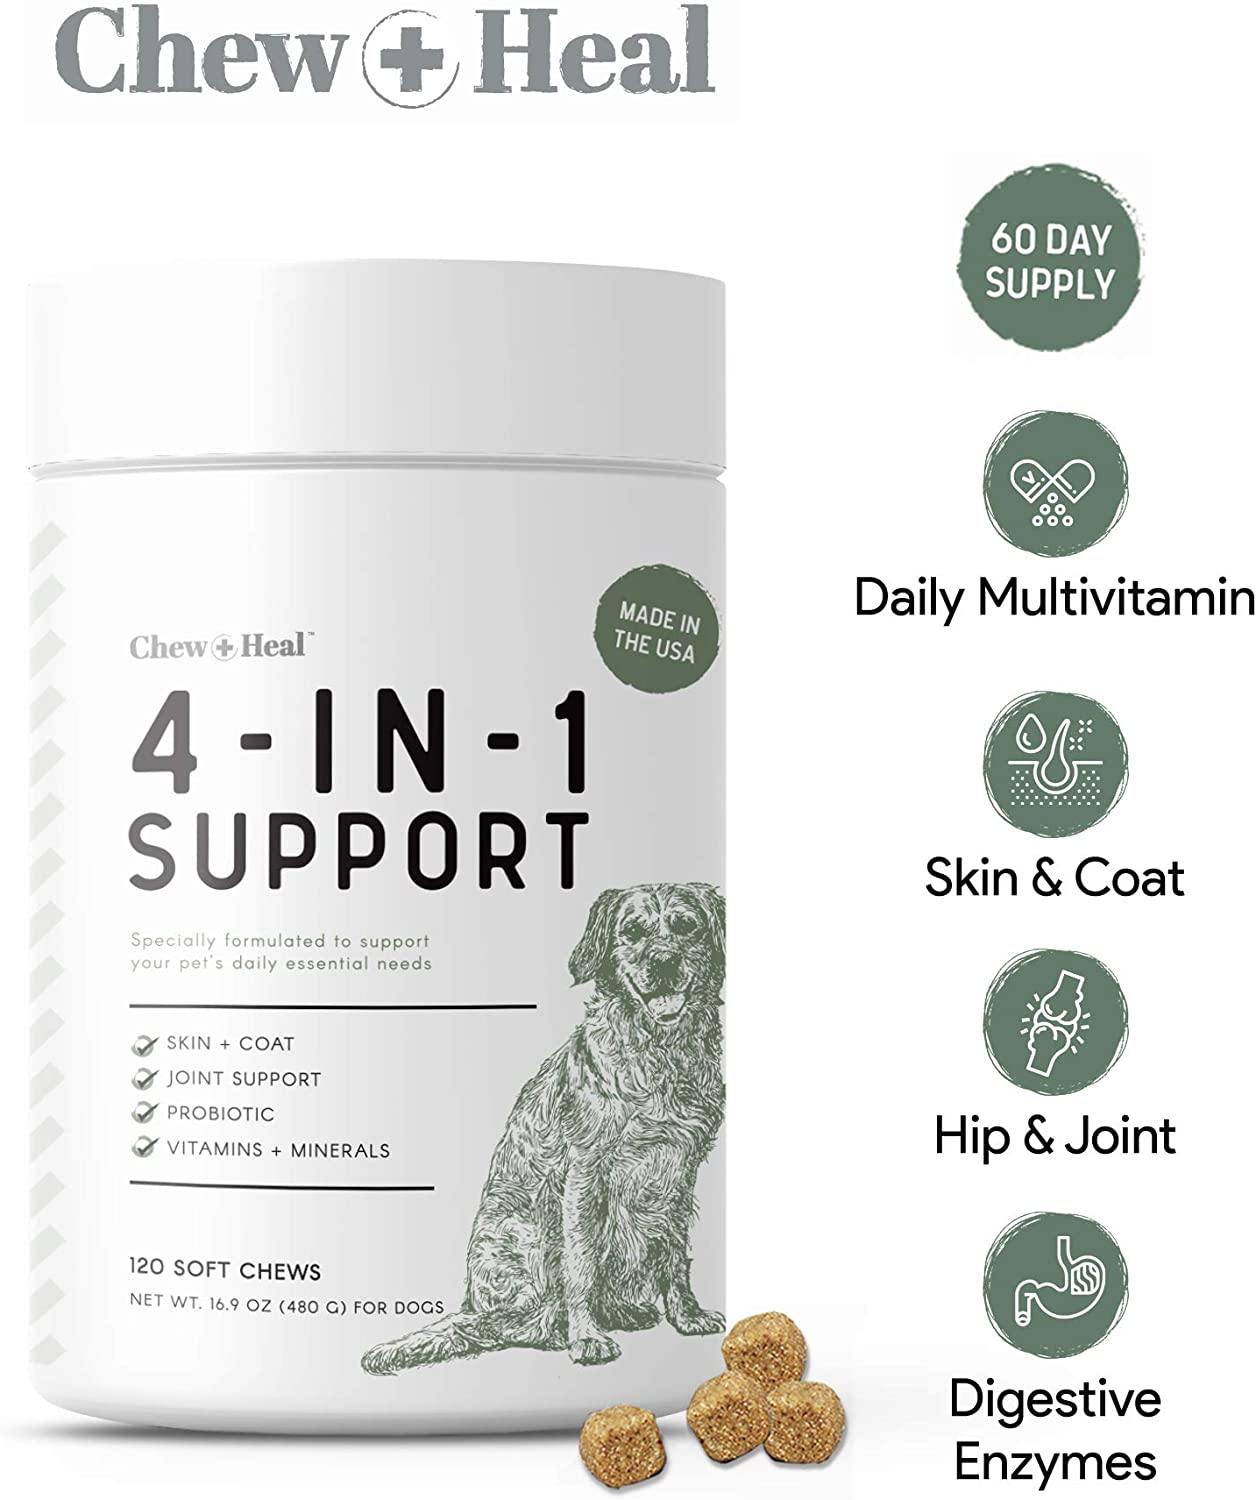 Chew + Heal 4 in 1 Dog Vitamins - 120 Soft Chews - Chewable Multivitamin with Probiotics, Digestive Enzymes, for Skin and Coat, Hip and Joint Support - with Omega, Calcium, Vitamins A, B, C, D, E